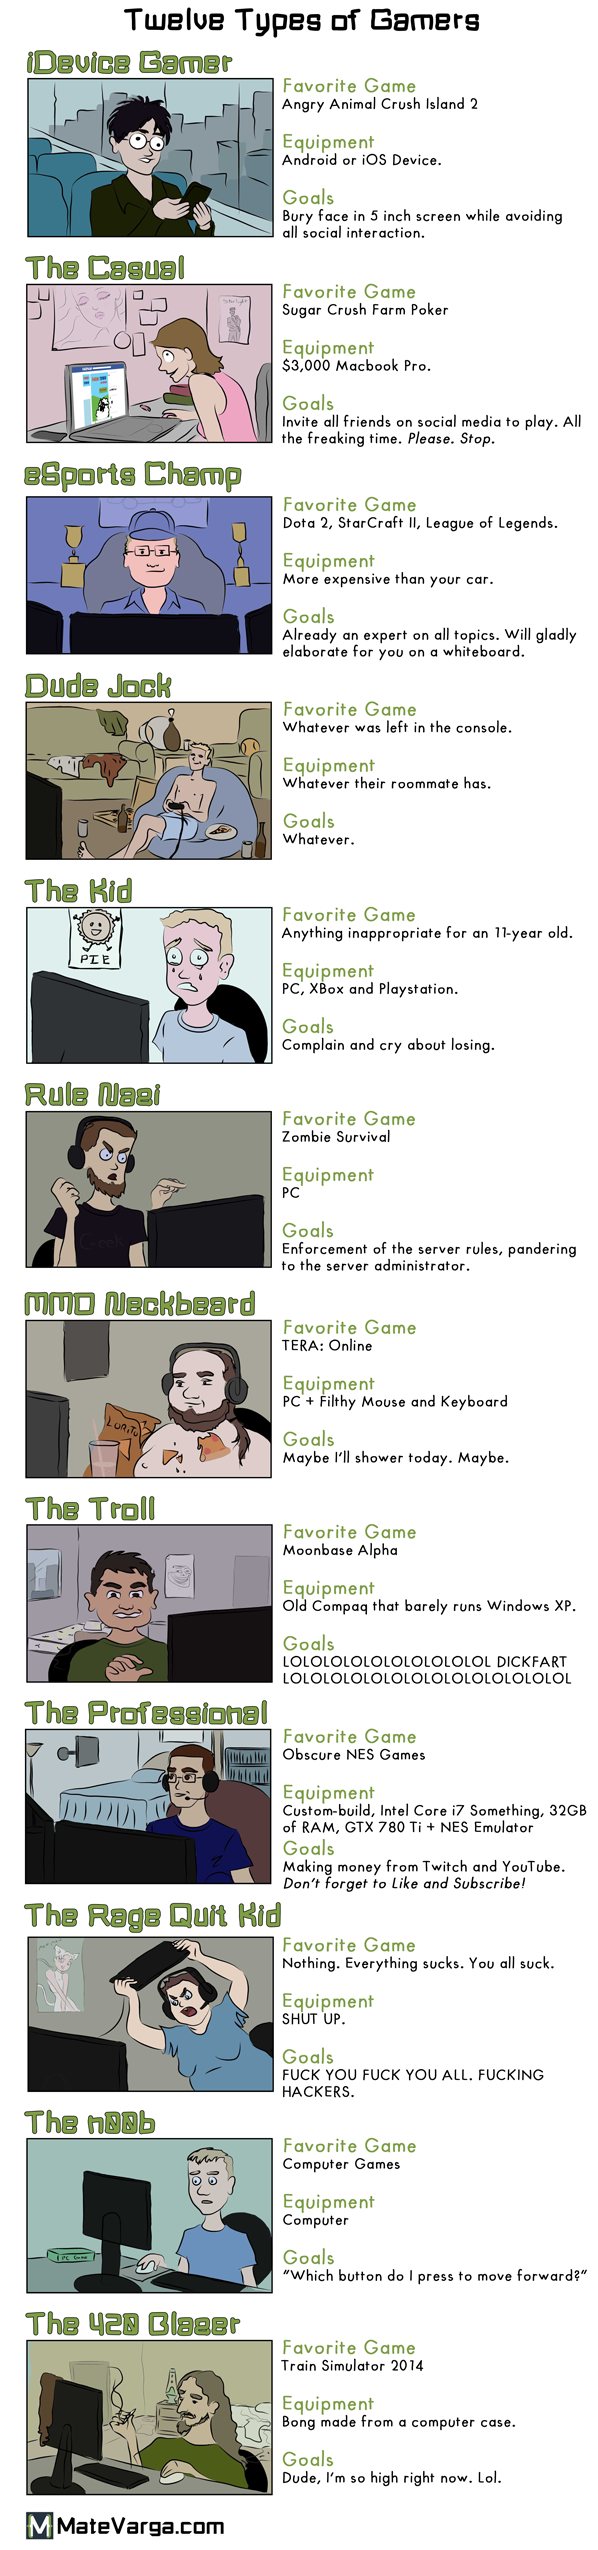 12 Types of Gamers